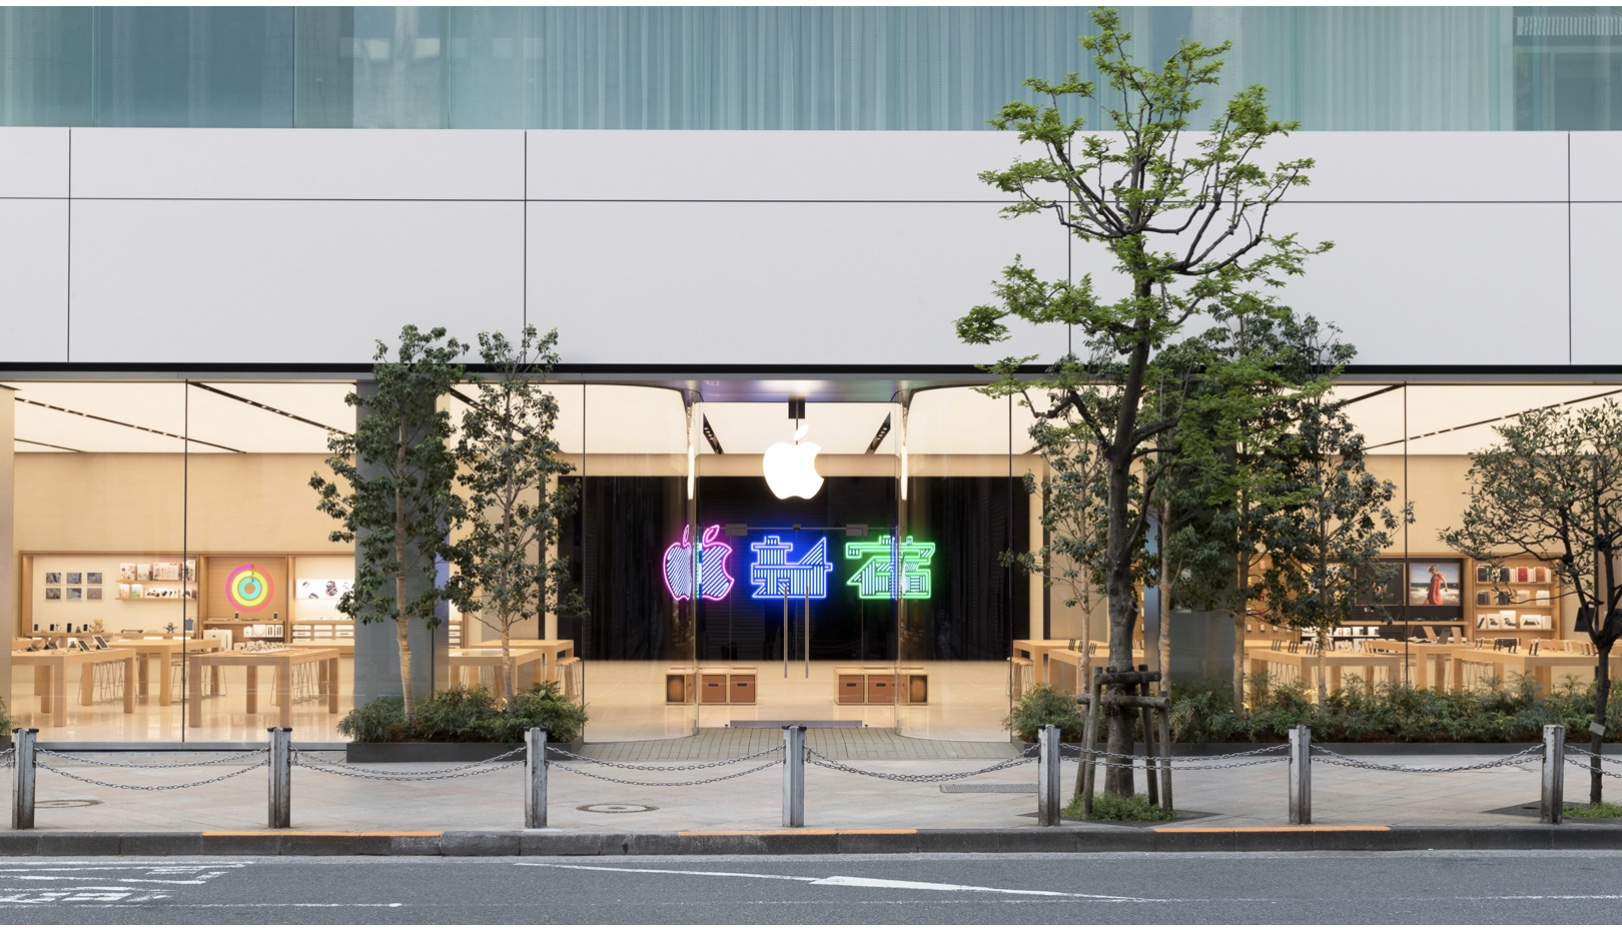 Apple Shinjuku is just blocks from Shinjuku Station in Tokyo's famous shopping, business and entertainment district. — Photo courtesy of Apple